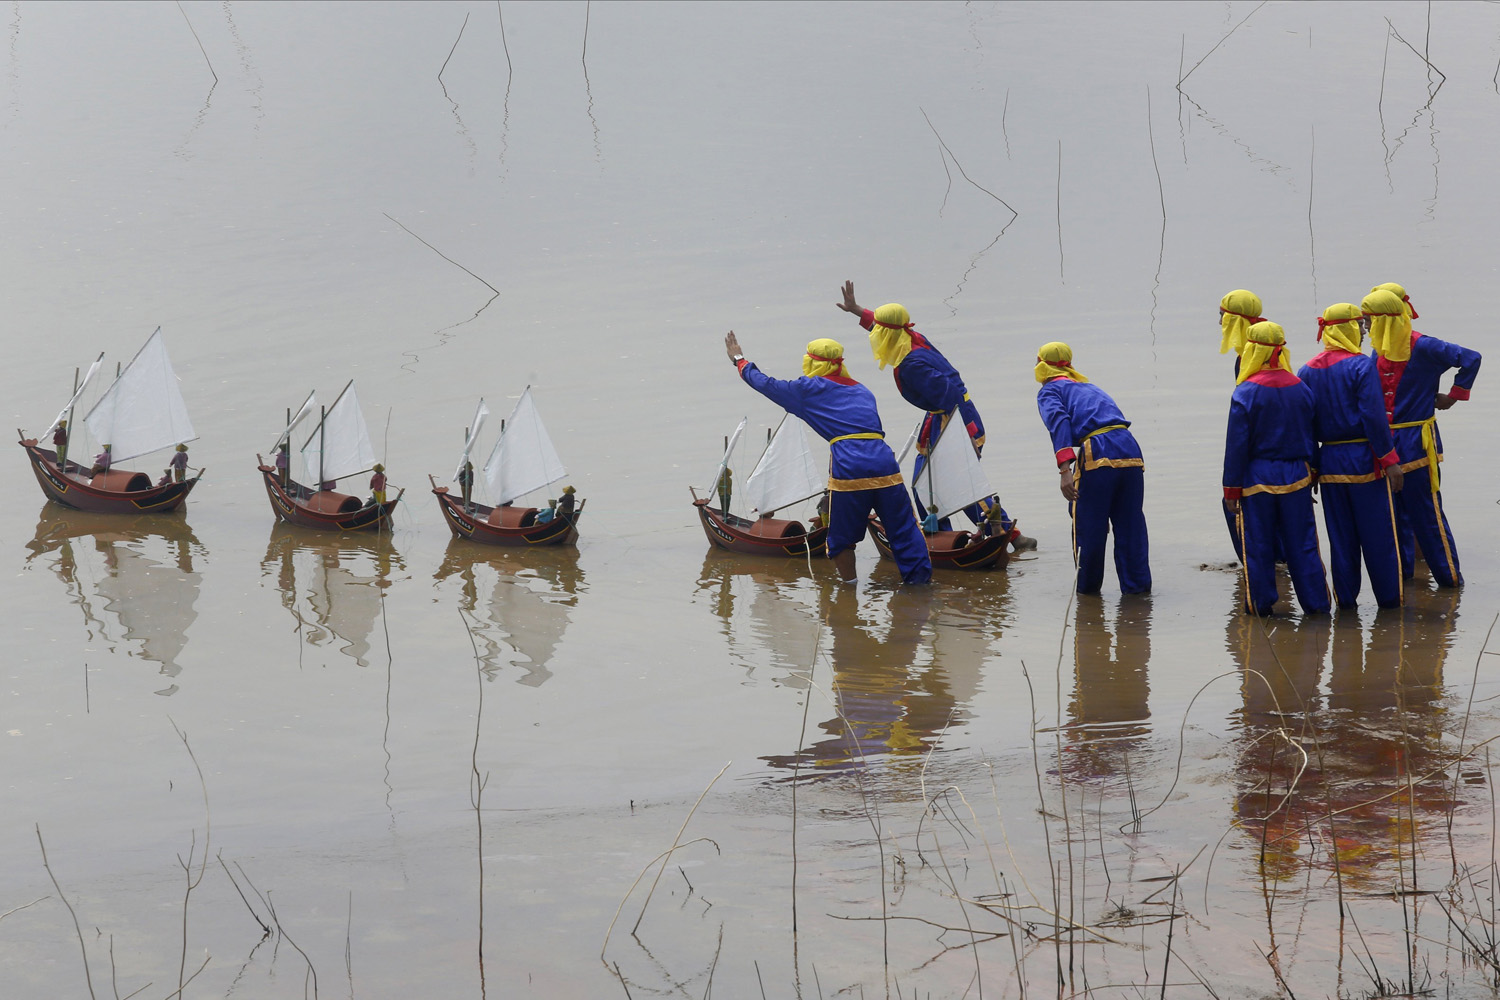 Jun. 29, 2014. Fishermen from Ly Son island release miniature fishing boat models with artificial soldiers into the water during a re-enactment of the Khao Le The Linh ceremony at a Vietnam Cultural village in Dong Mo, outside Hanoi.